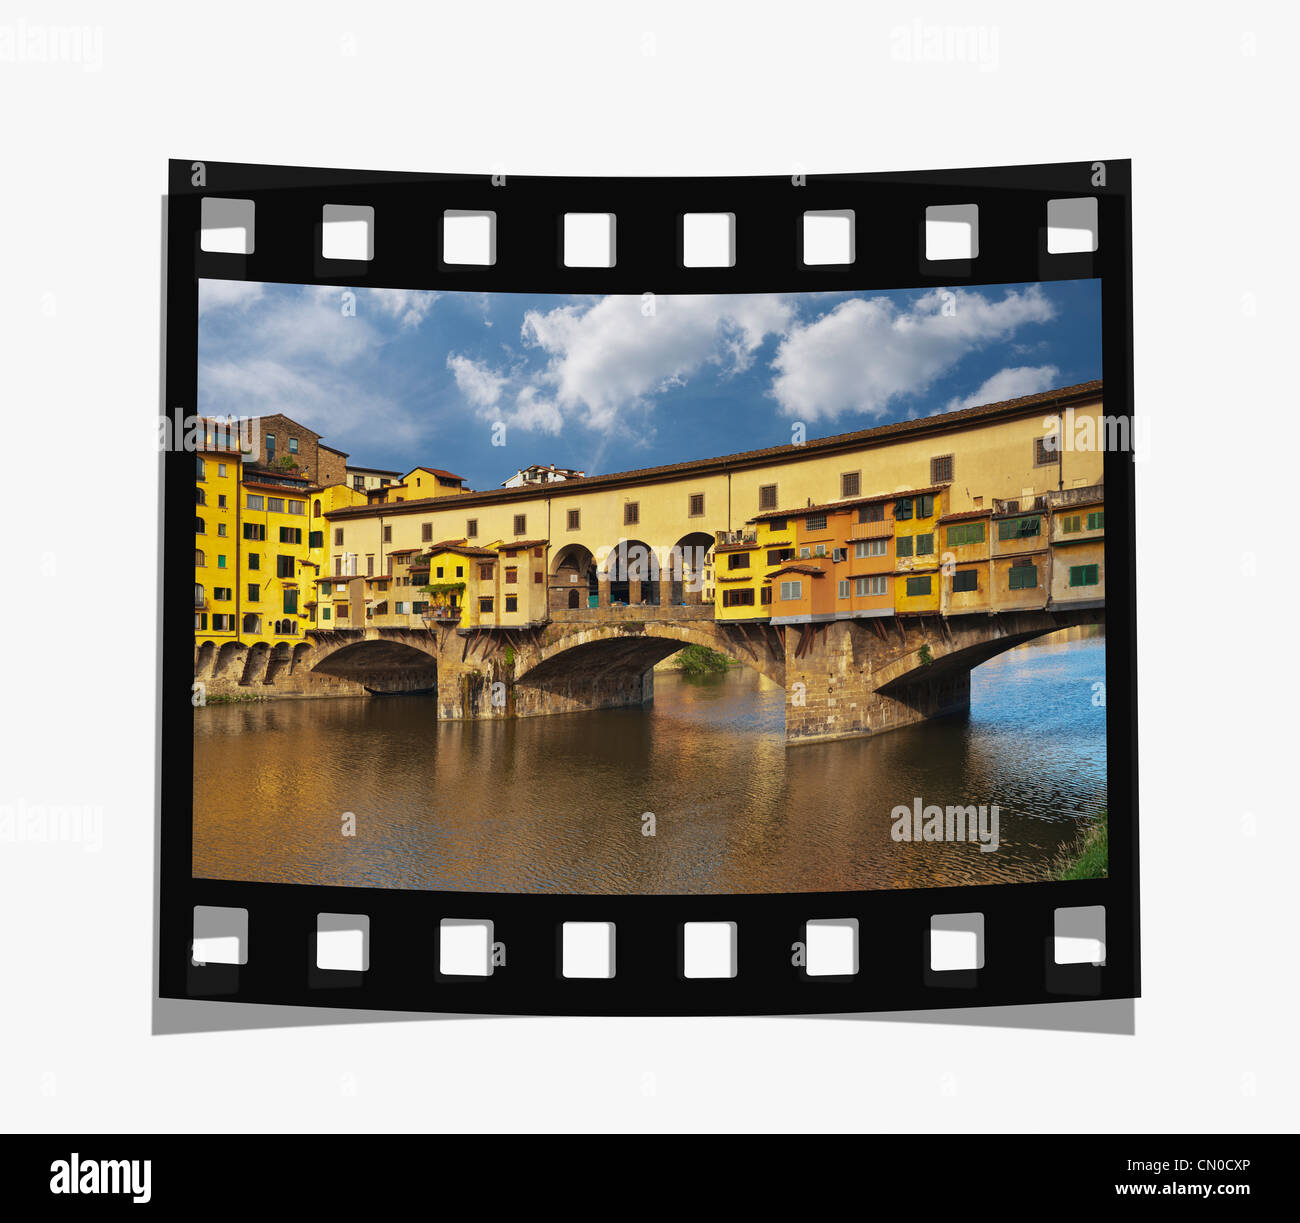 Filmstrip: View over the River Arno to the Bridge Ponte Vecchio, Florence, Tuscany, Italy, Europe - Stock Image